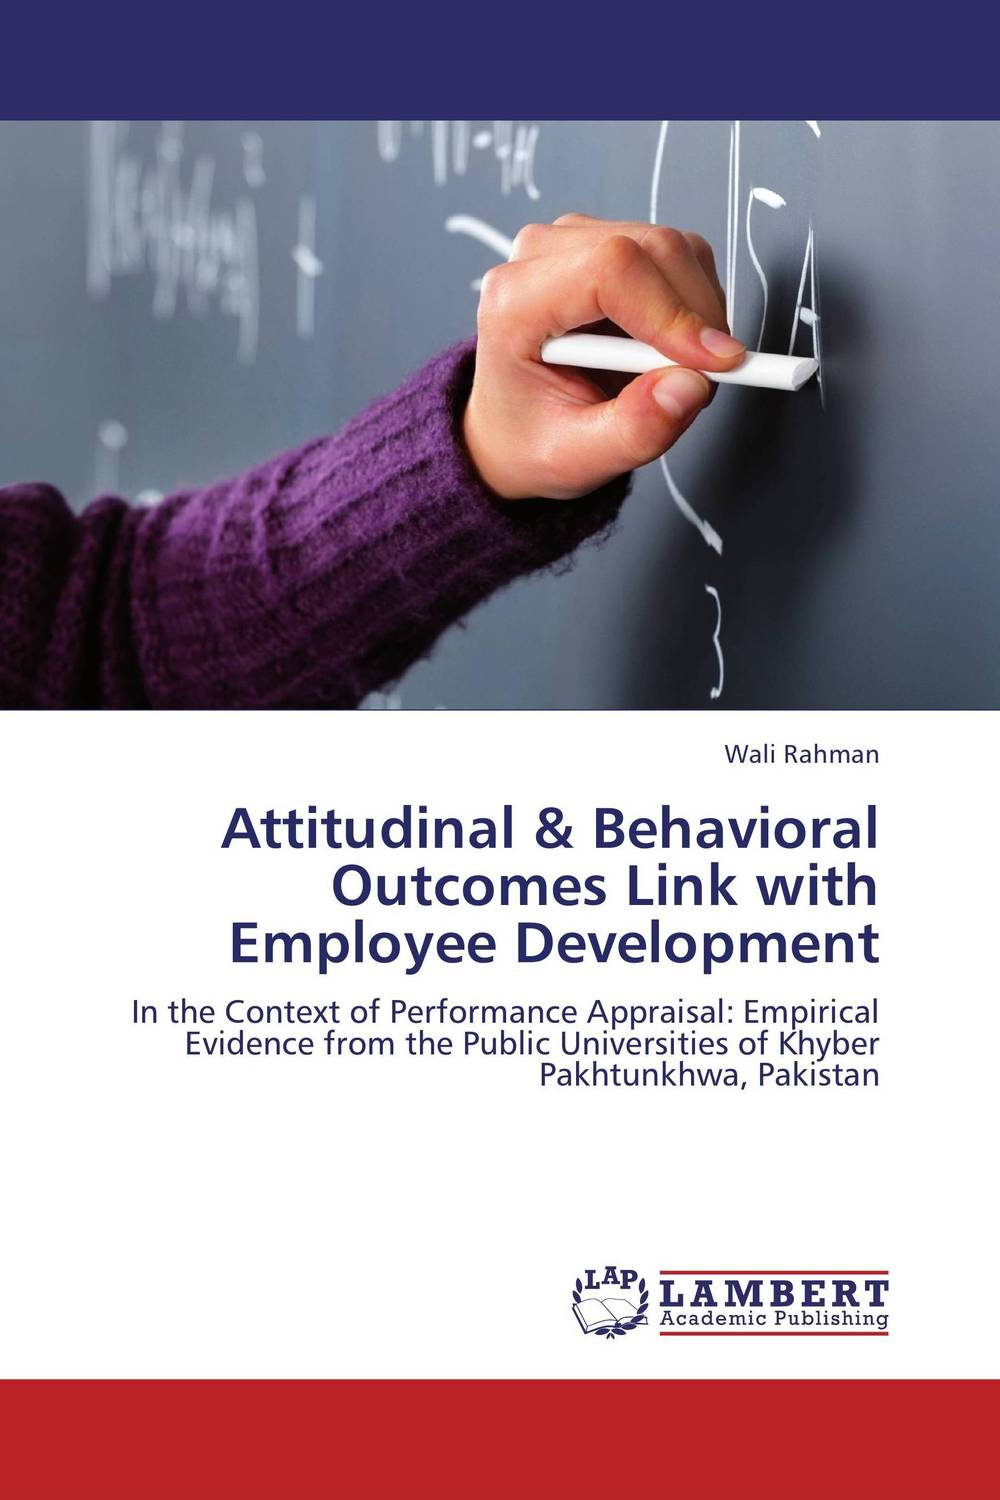 Attitudinal & Behavioral Outcomes Link with Employee Development technology based employee training and organizational performance